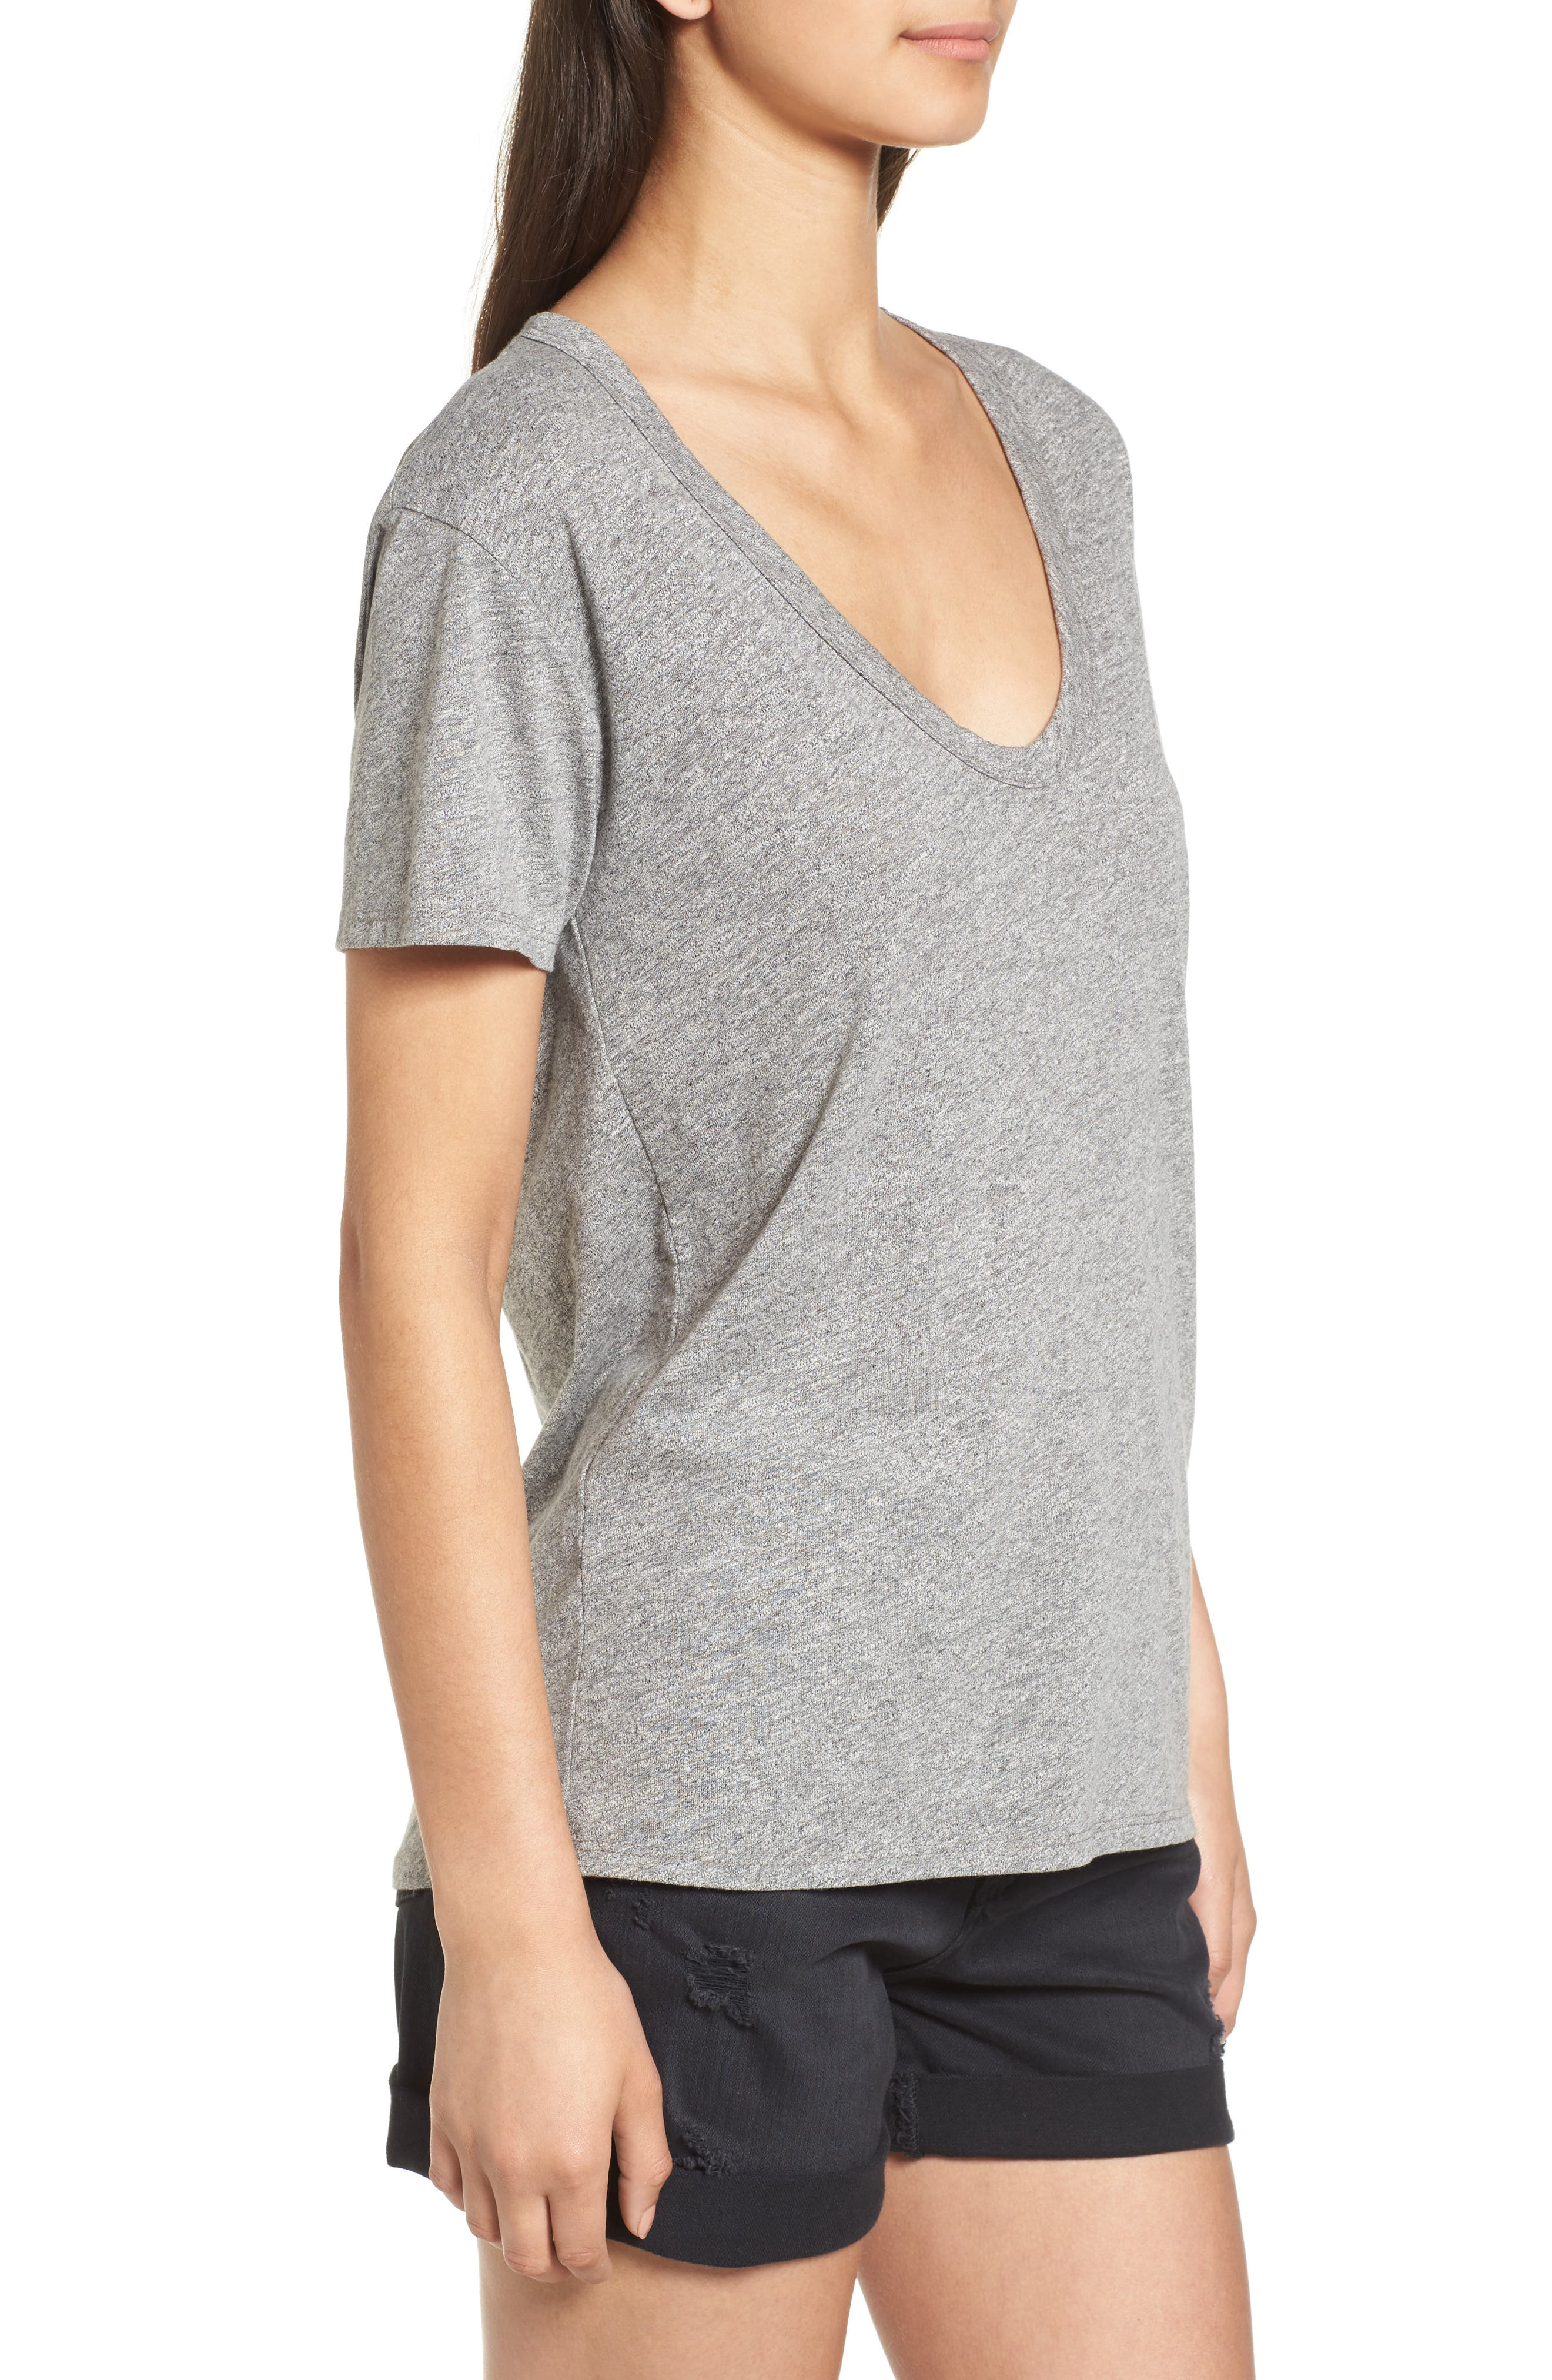 Henson Tee,                             Alternate thumbnail 3, color,                             SPECKLED HEATHER GREY